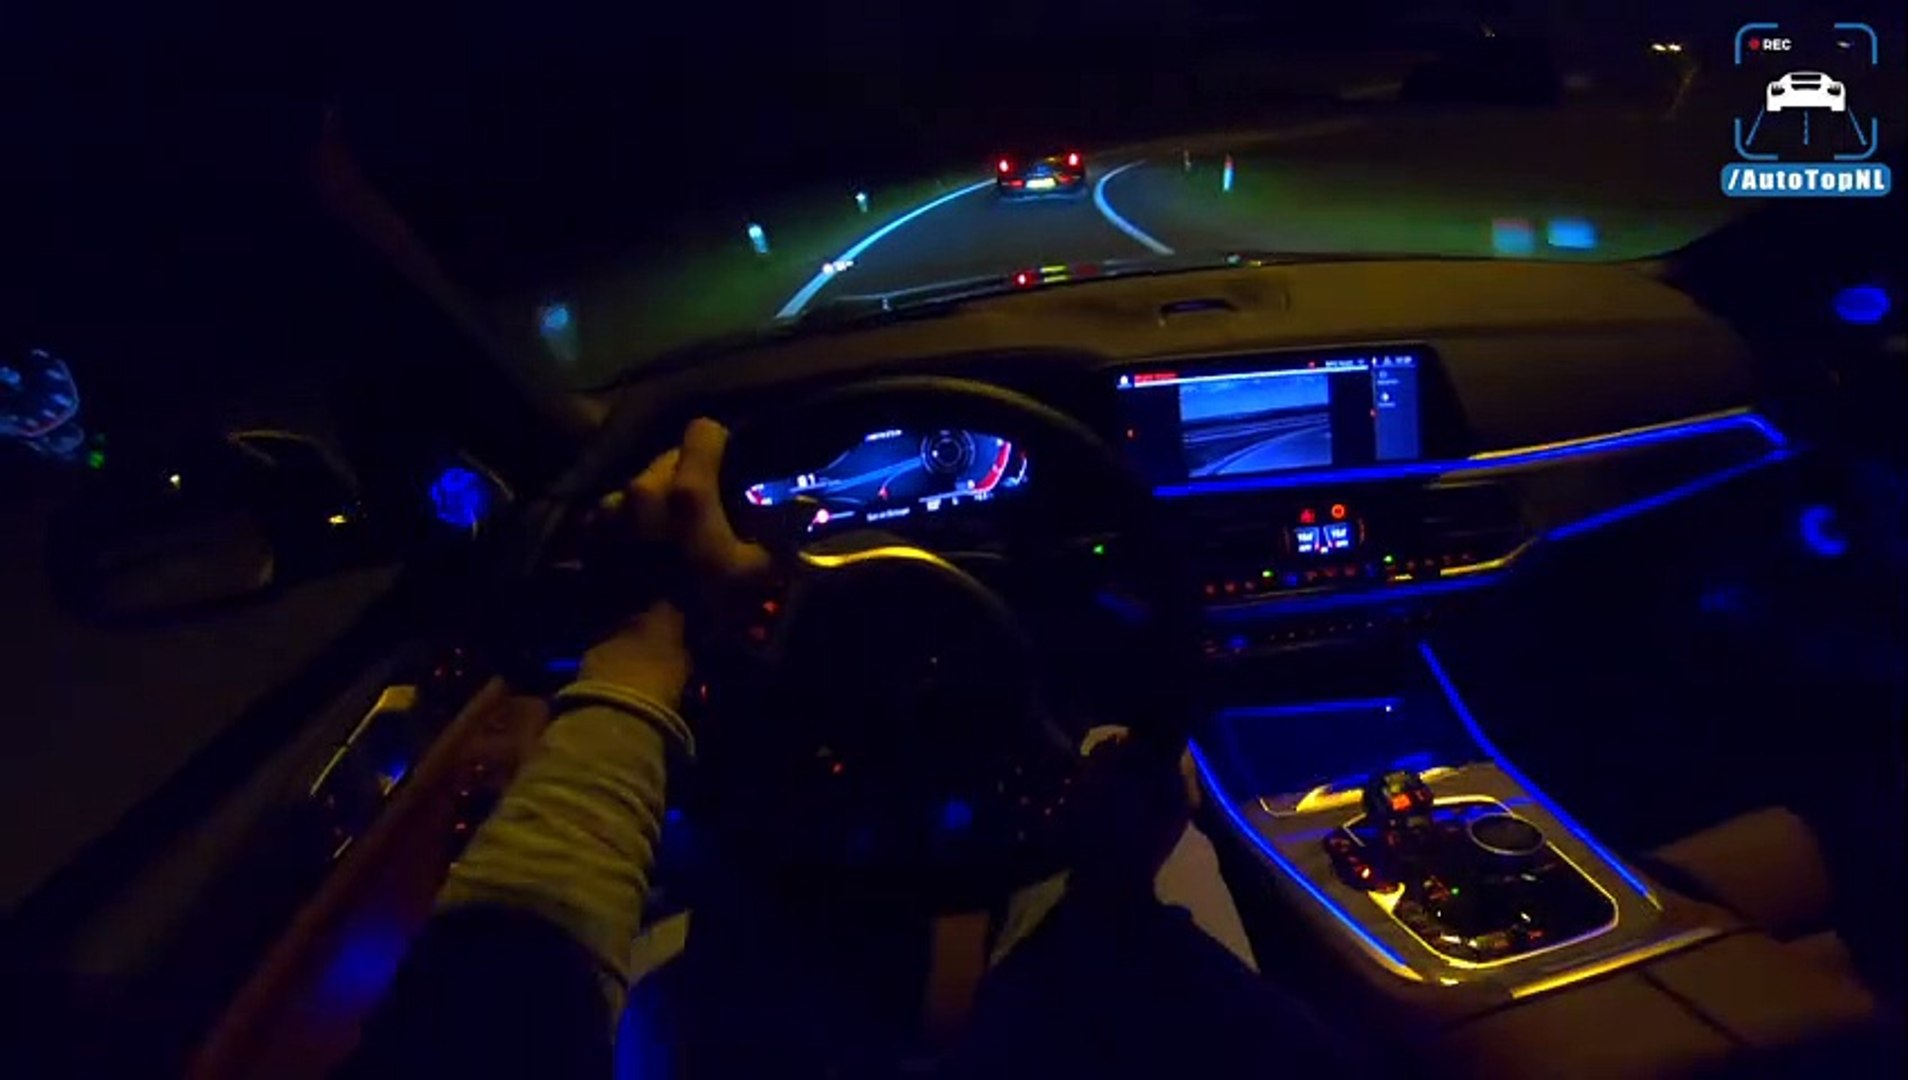 New Bmw X5 M50d G05 Night Drive Pov Ambient Lighting By Autotopnl Dailymotion Video